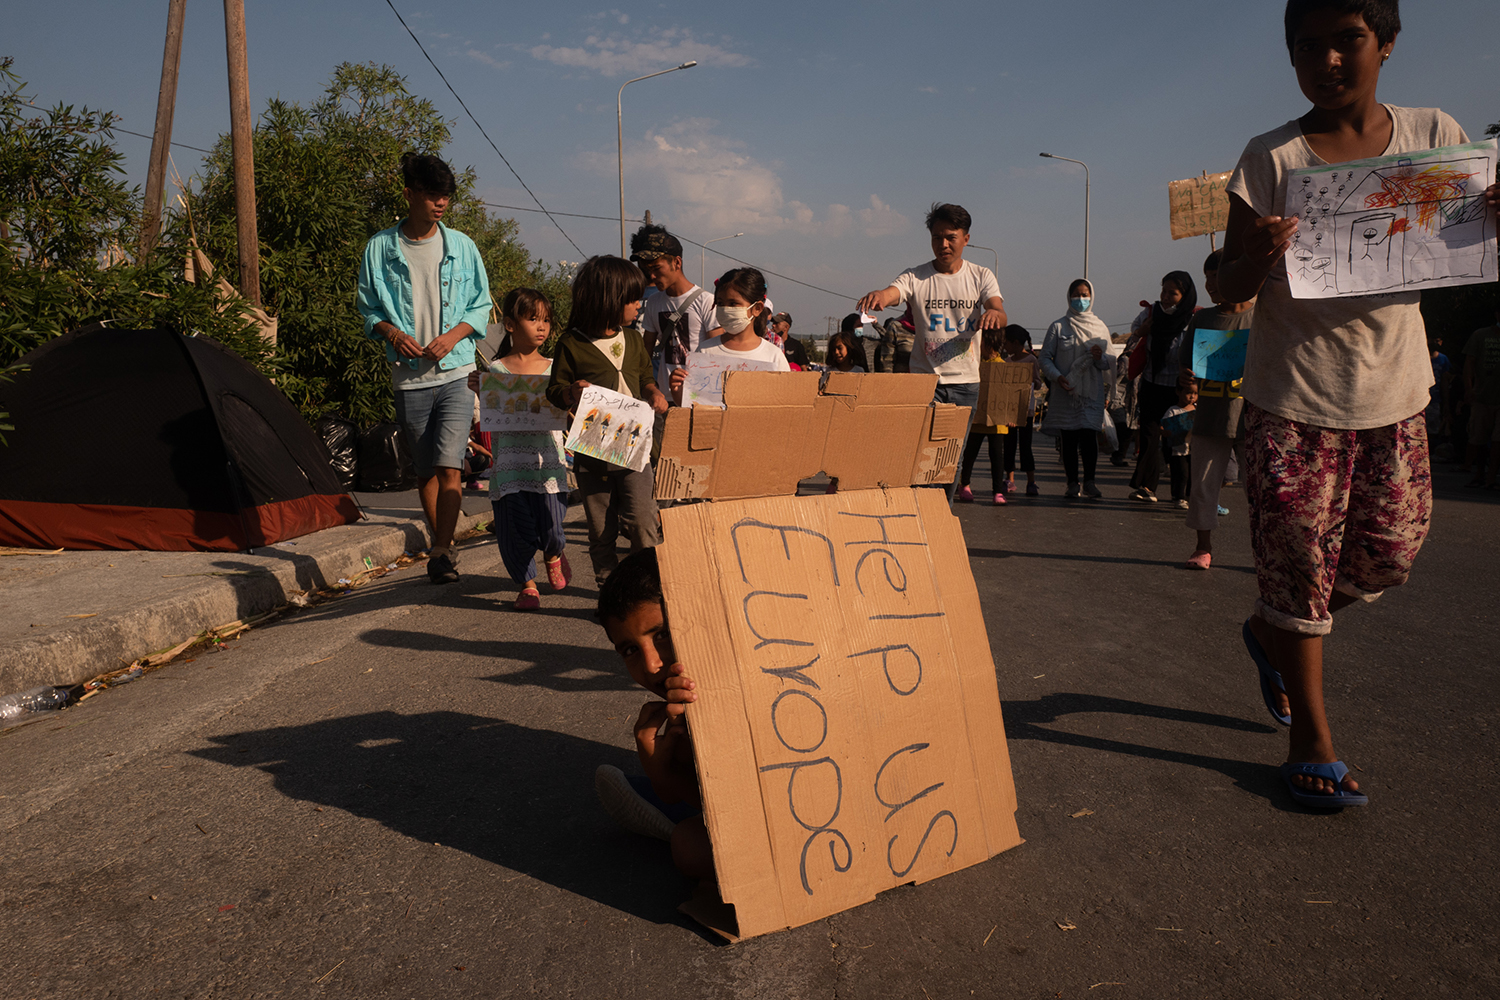 Migrant children protest in the main street connecting Moria camp to Mytilene against plans to move to a new camp on Sept. 12.